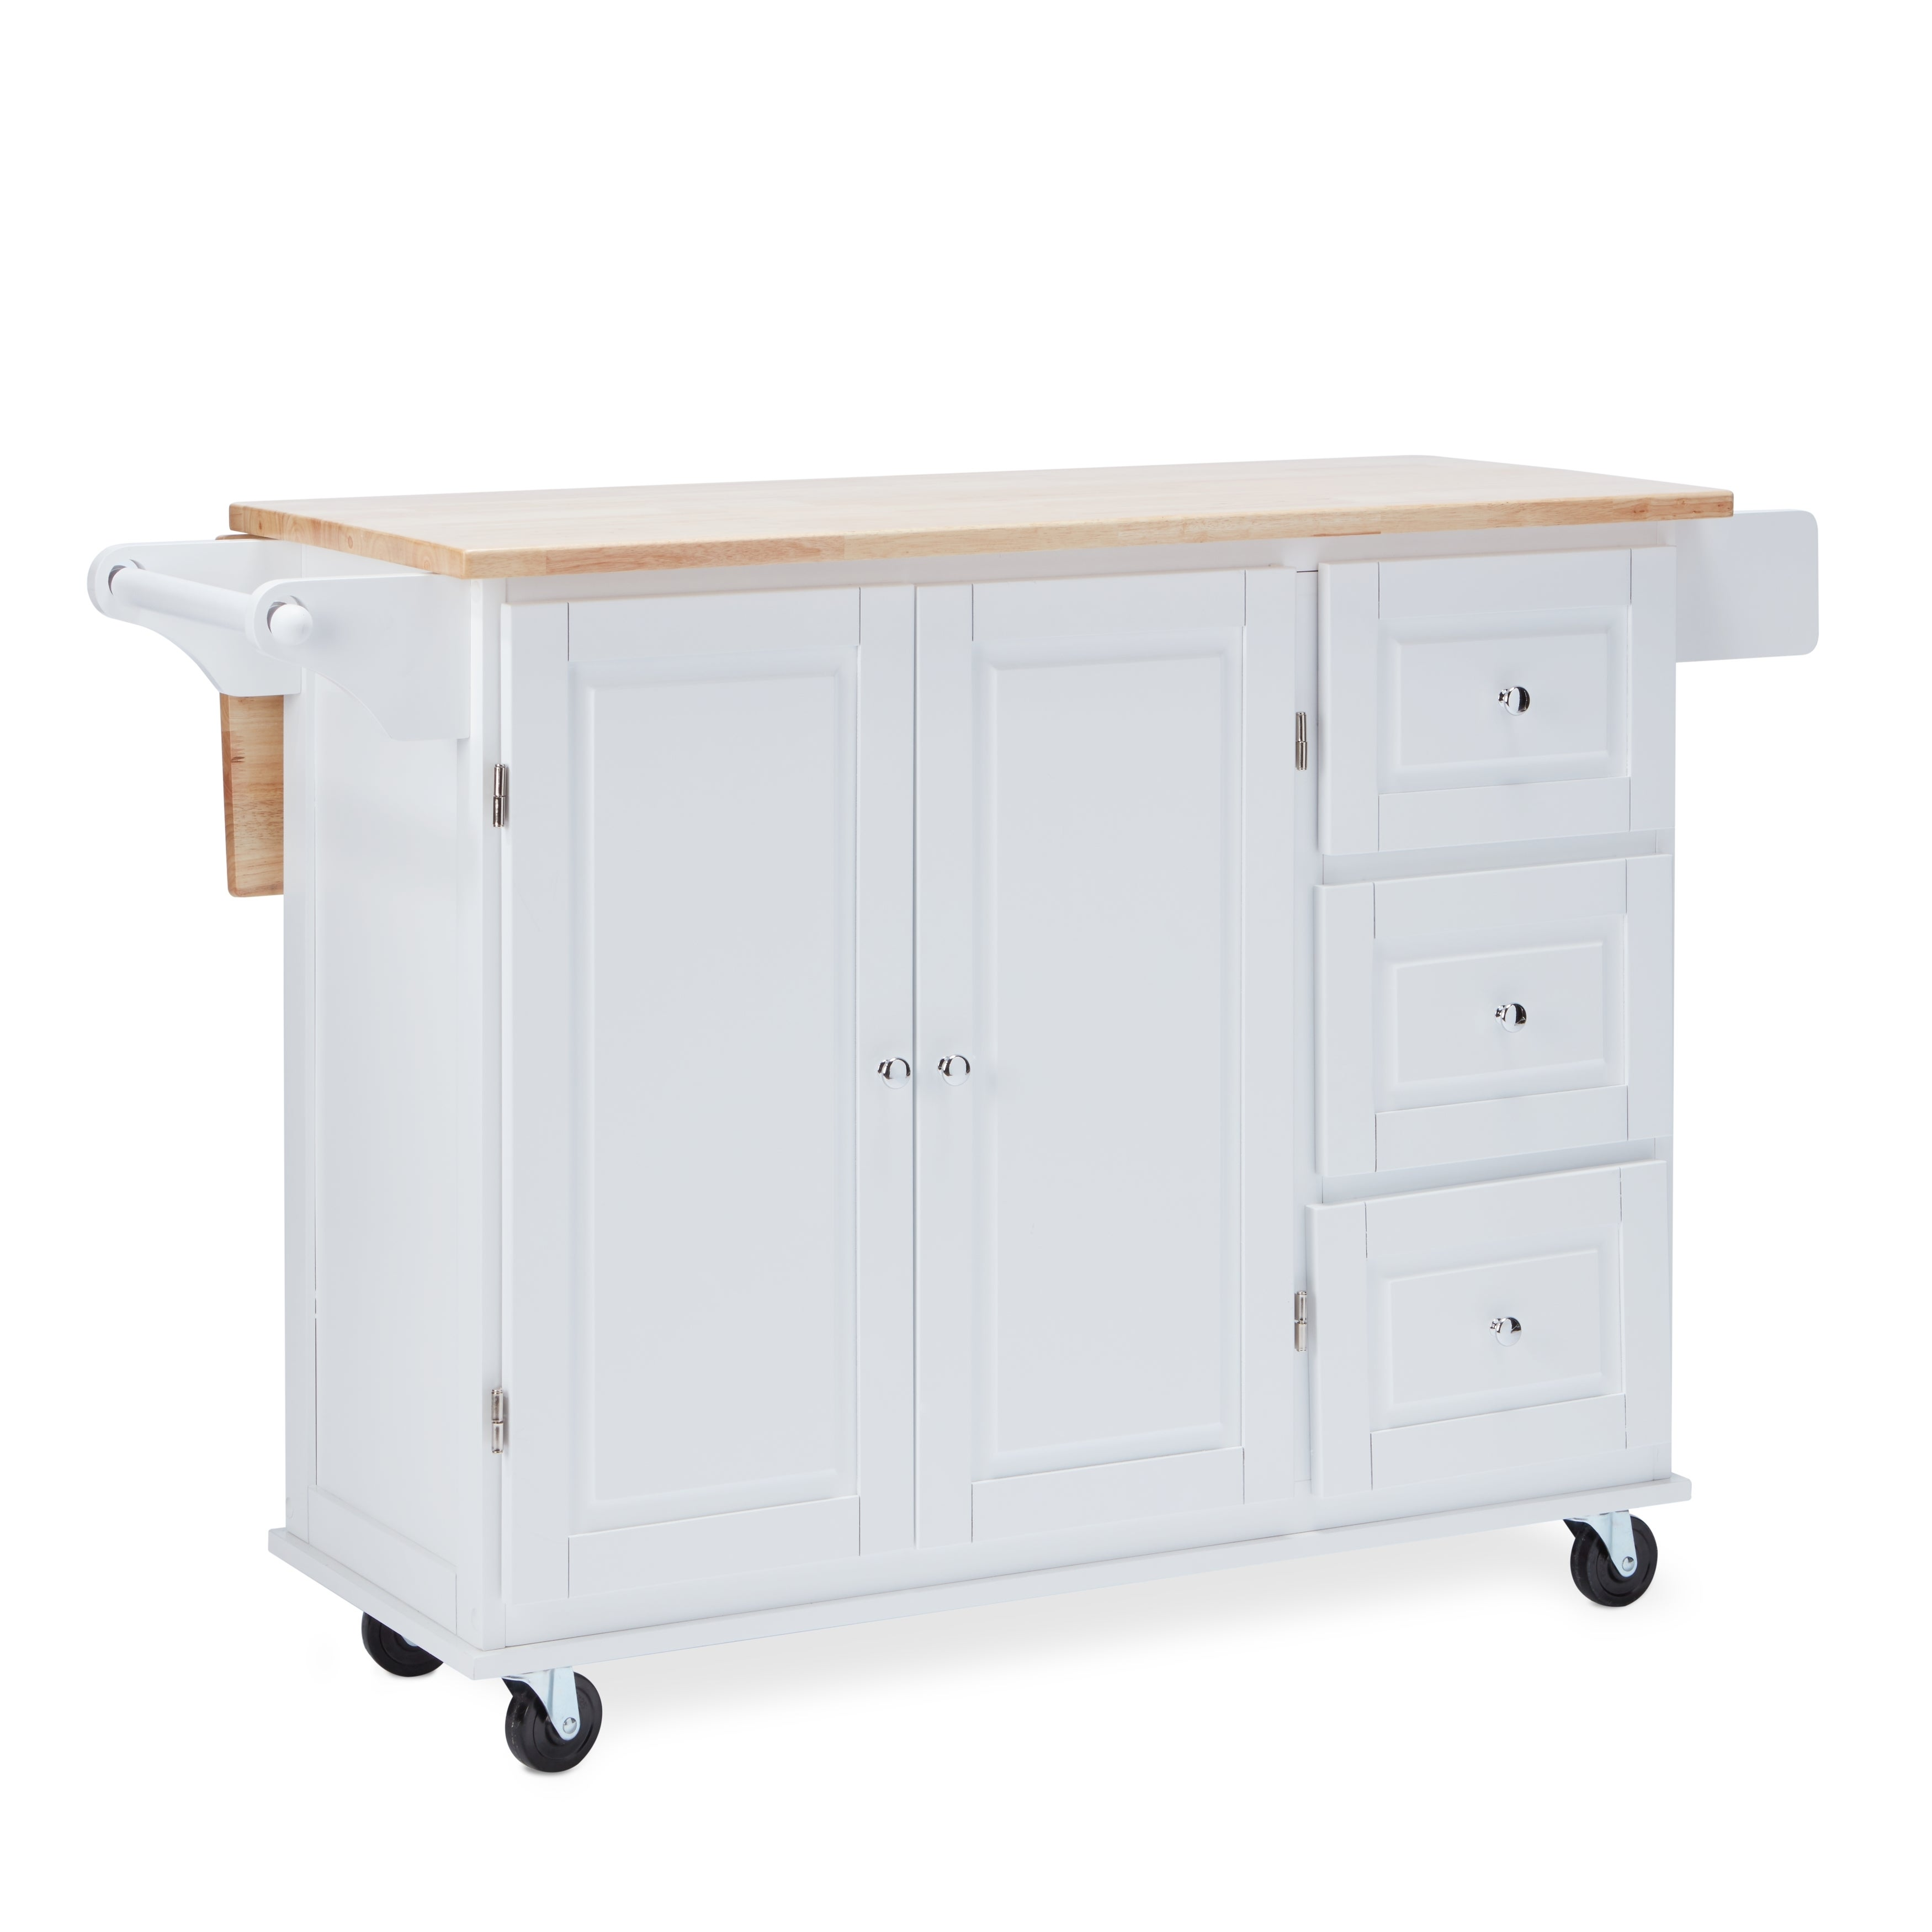 Shop aspen three drawers kitchen cart on sale free shipping today overstock com 20602808